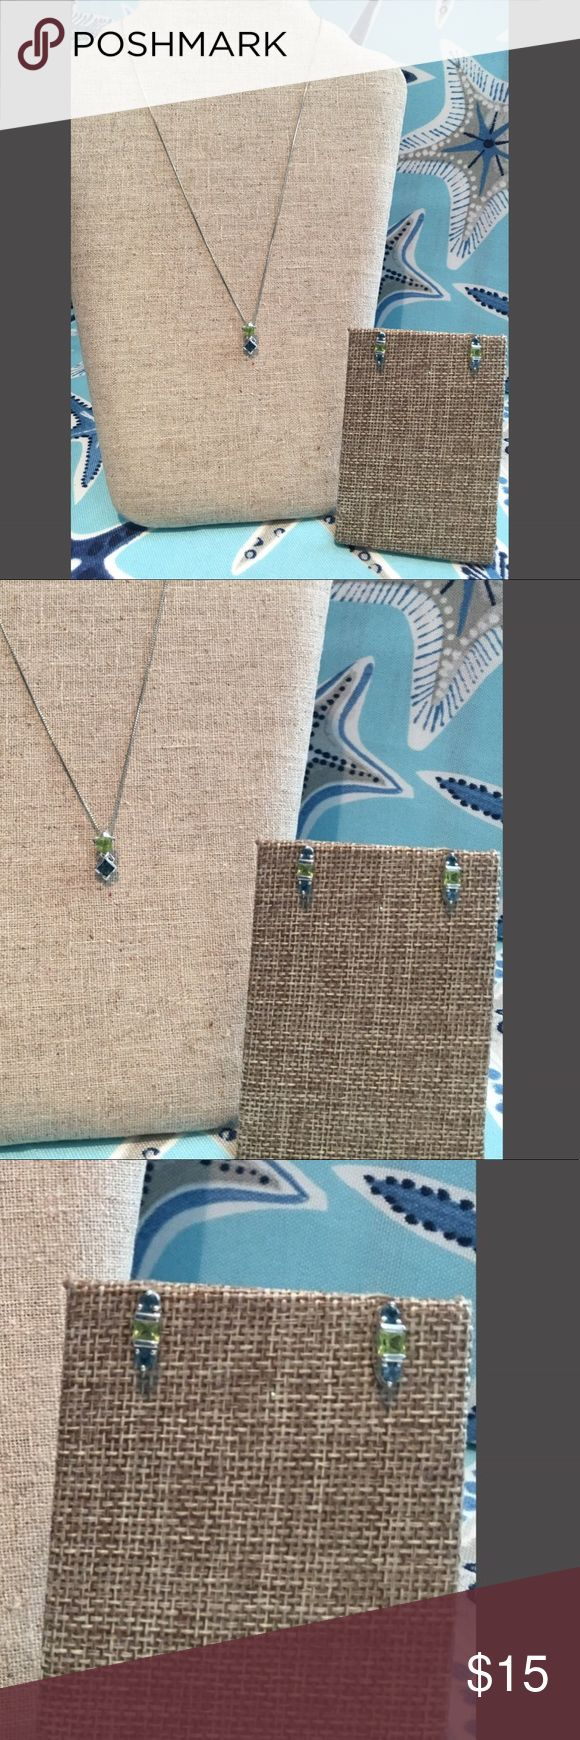 Sapphire & Peridot Necklace & Matching Earrings Beautiful Sapphire & Peridot Necklace Charm and Matching Earrings.   Can't go wrong with this set.  Doesn't include necklace. Jewelry